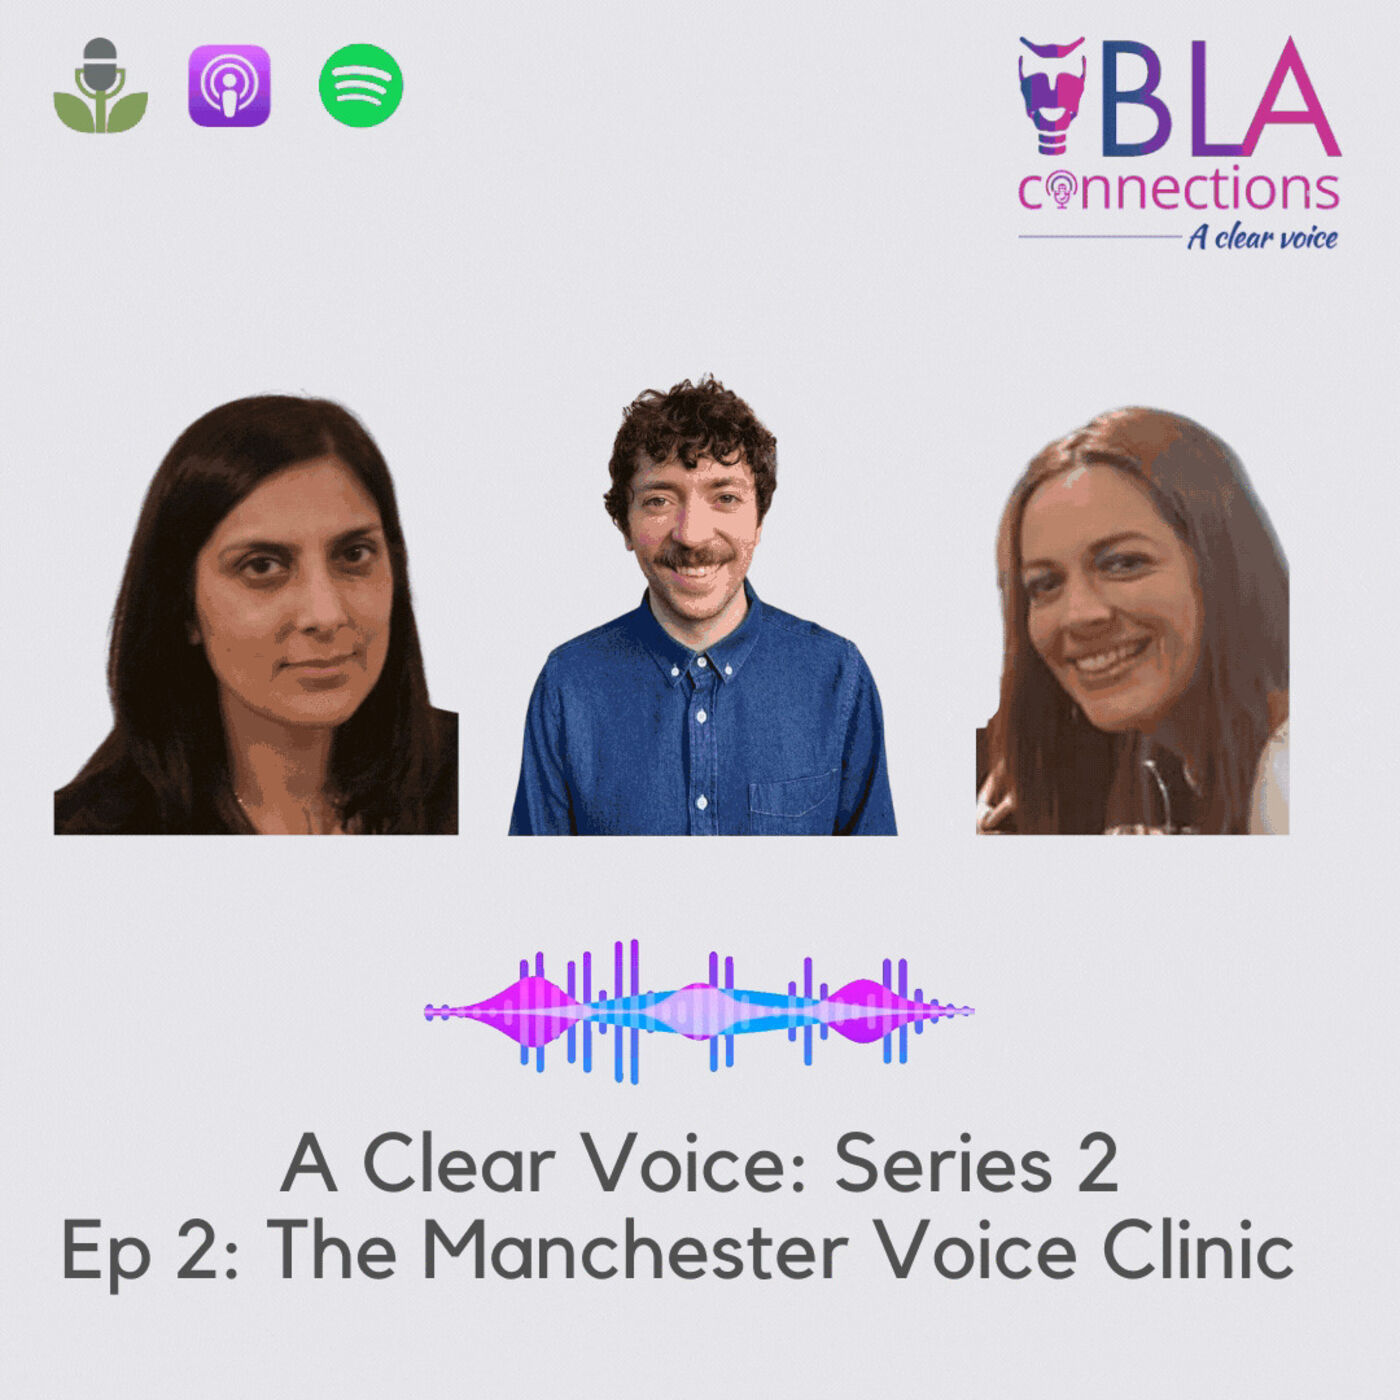 S2 Ep 2: The Manchester Voice Clinic on Virtual Clinics